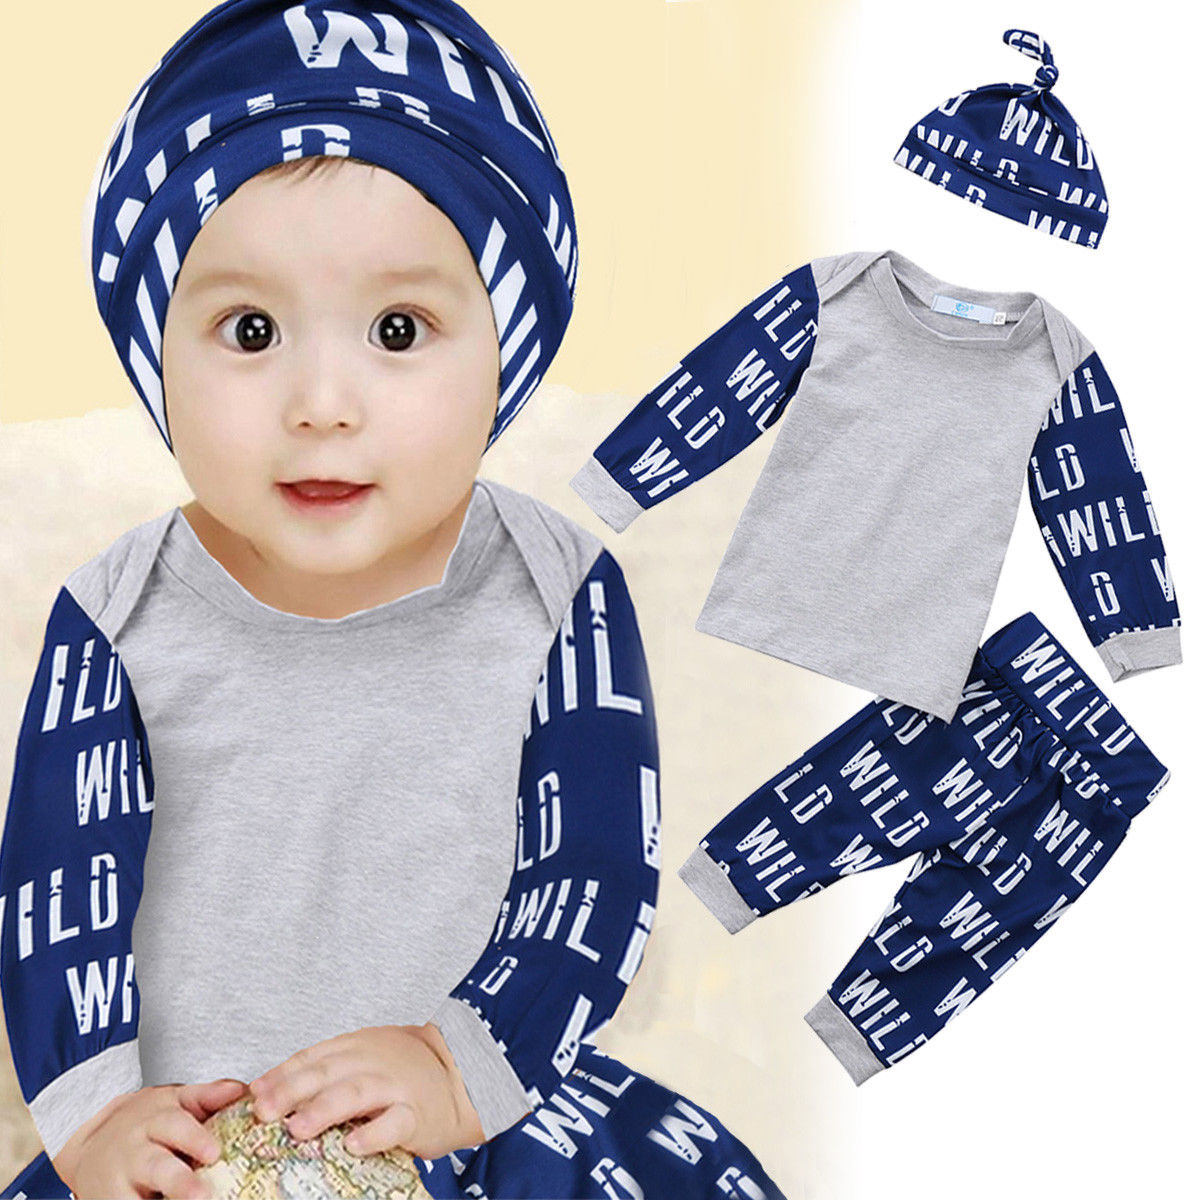 3pcs Newborn Toddler Infant Baby Boy Girl Letters Wild Printing Clothes T-shirt Tops+Pants Outfits Set